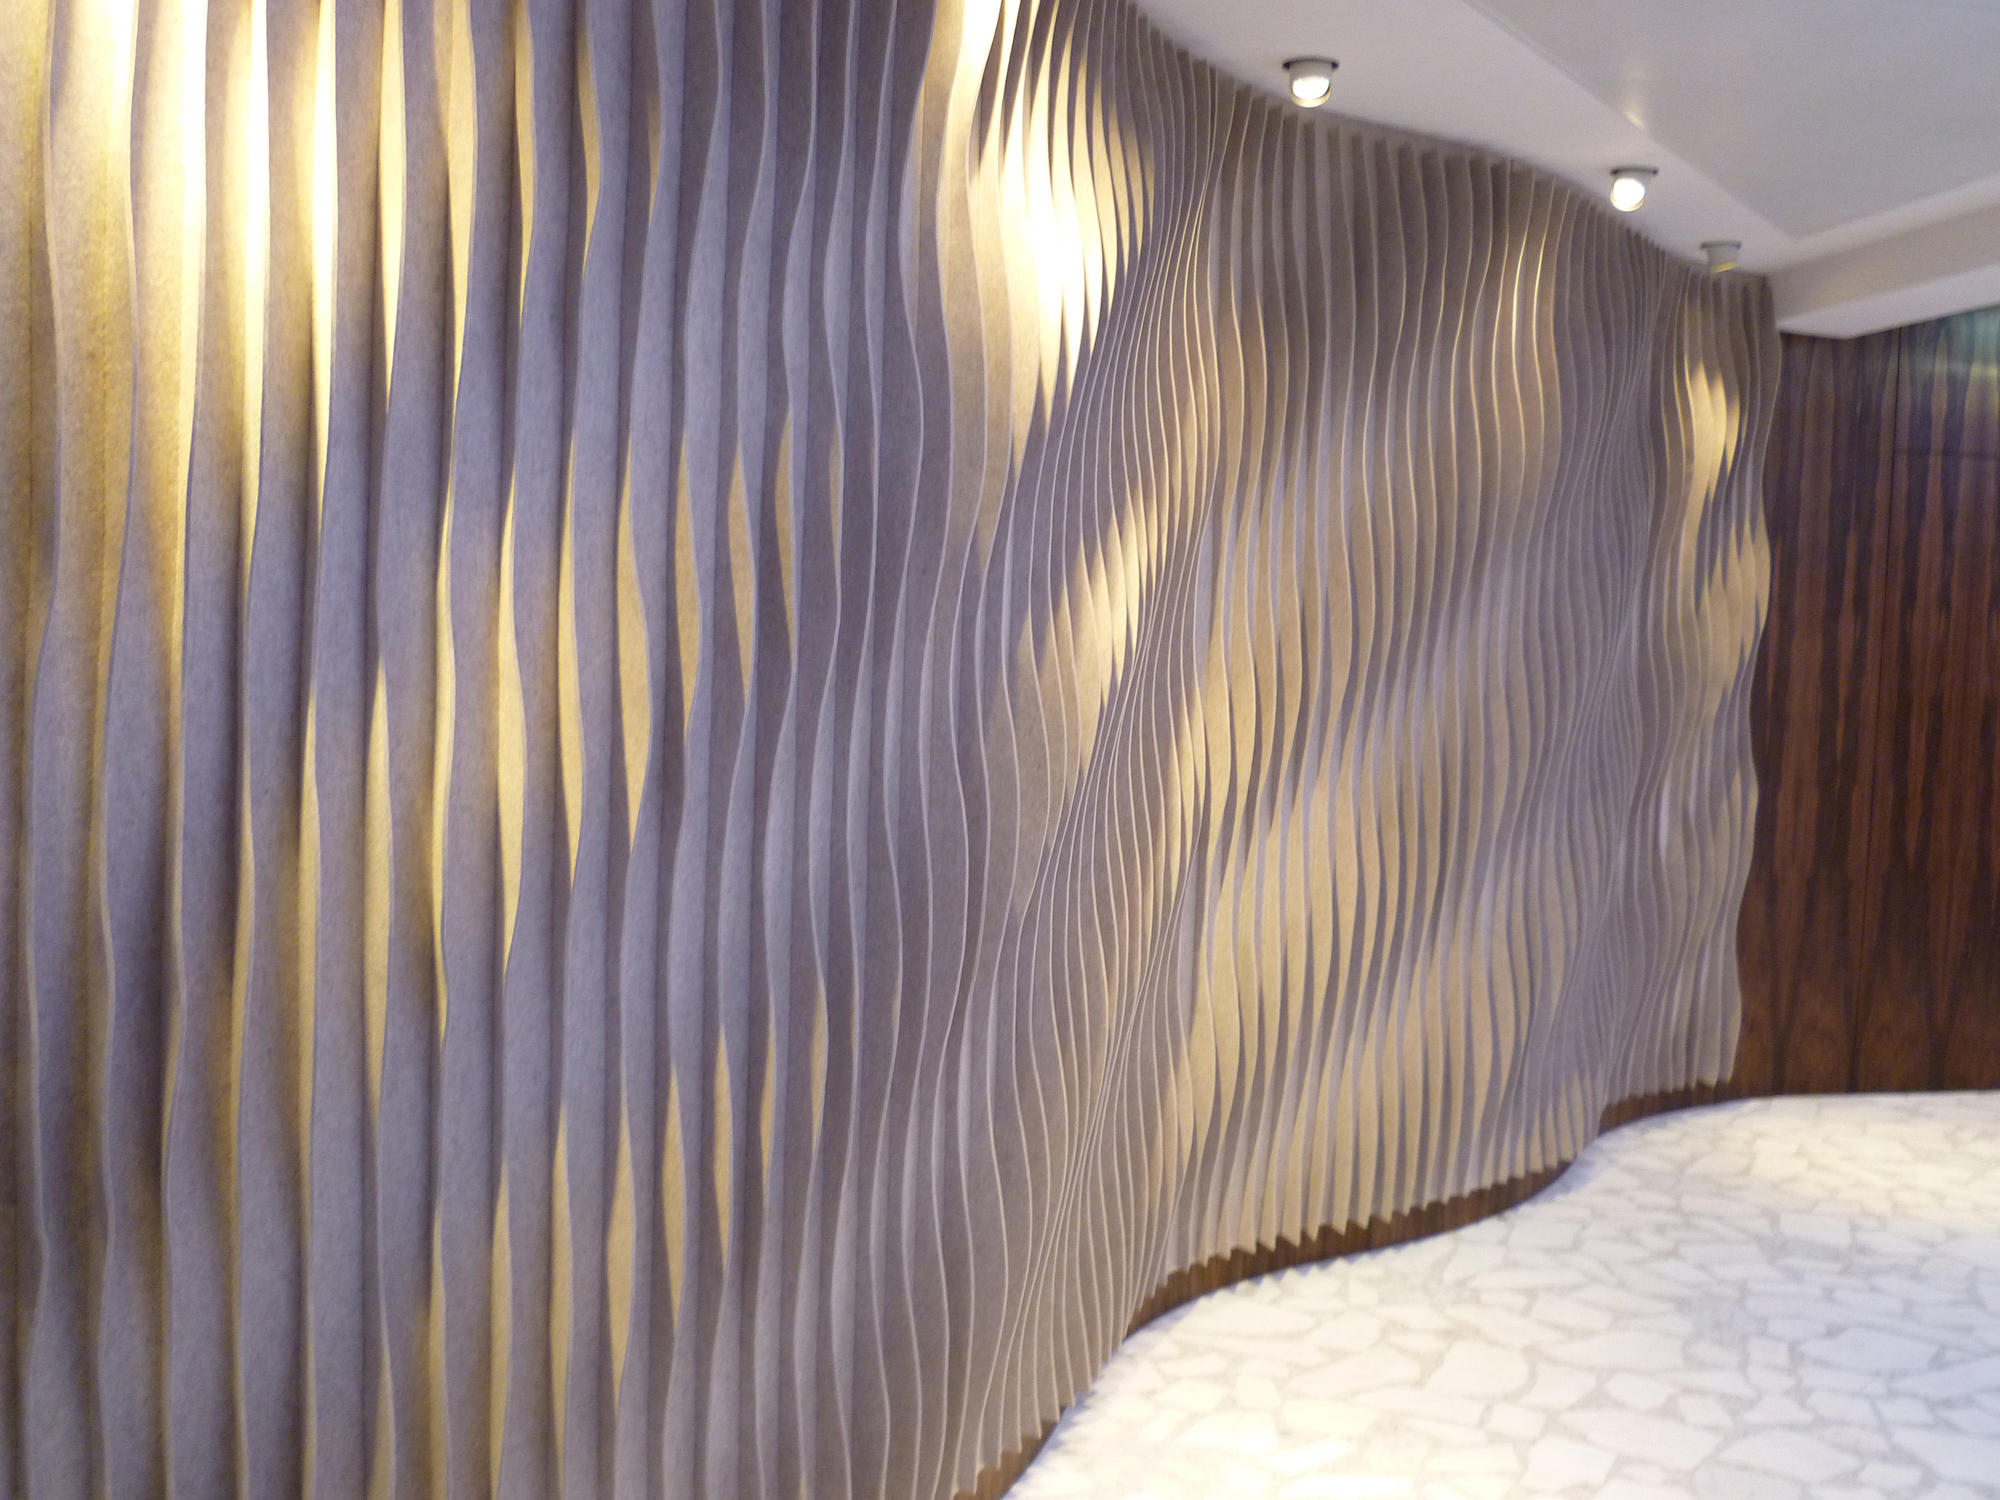 Laine wall panel bespoke fabrics from anne kyyr quinn architonic - Decorative acoustic wall panels ...